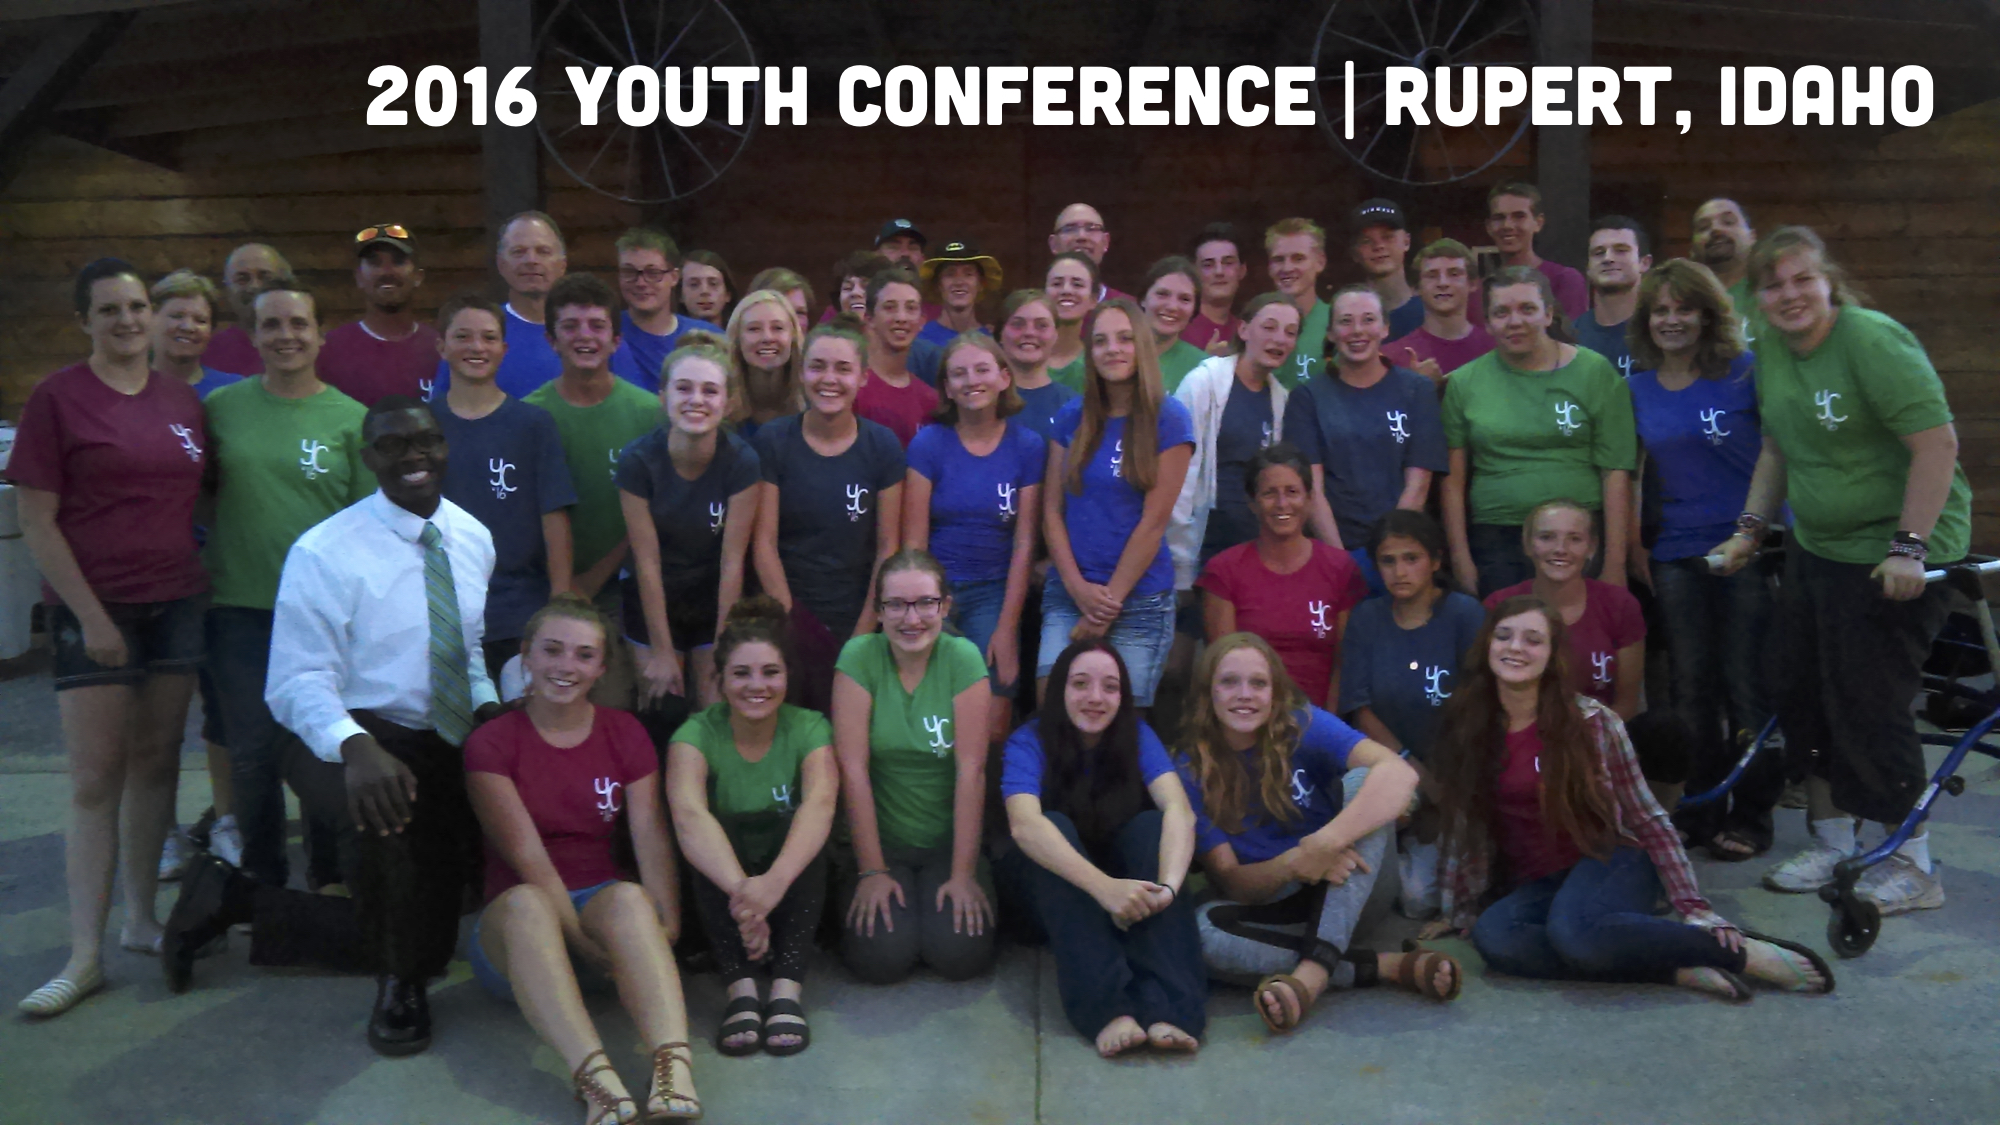 2016 Youth Conference.jpg